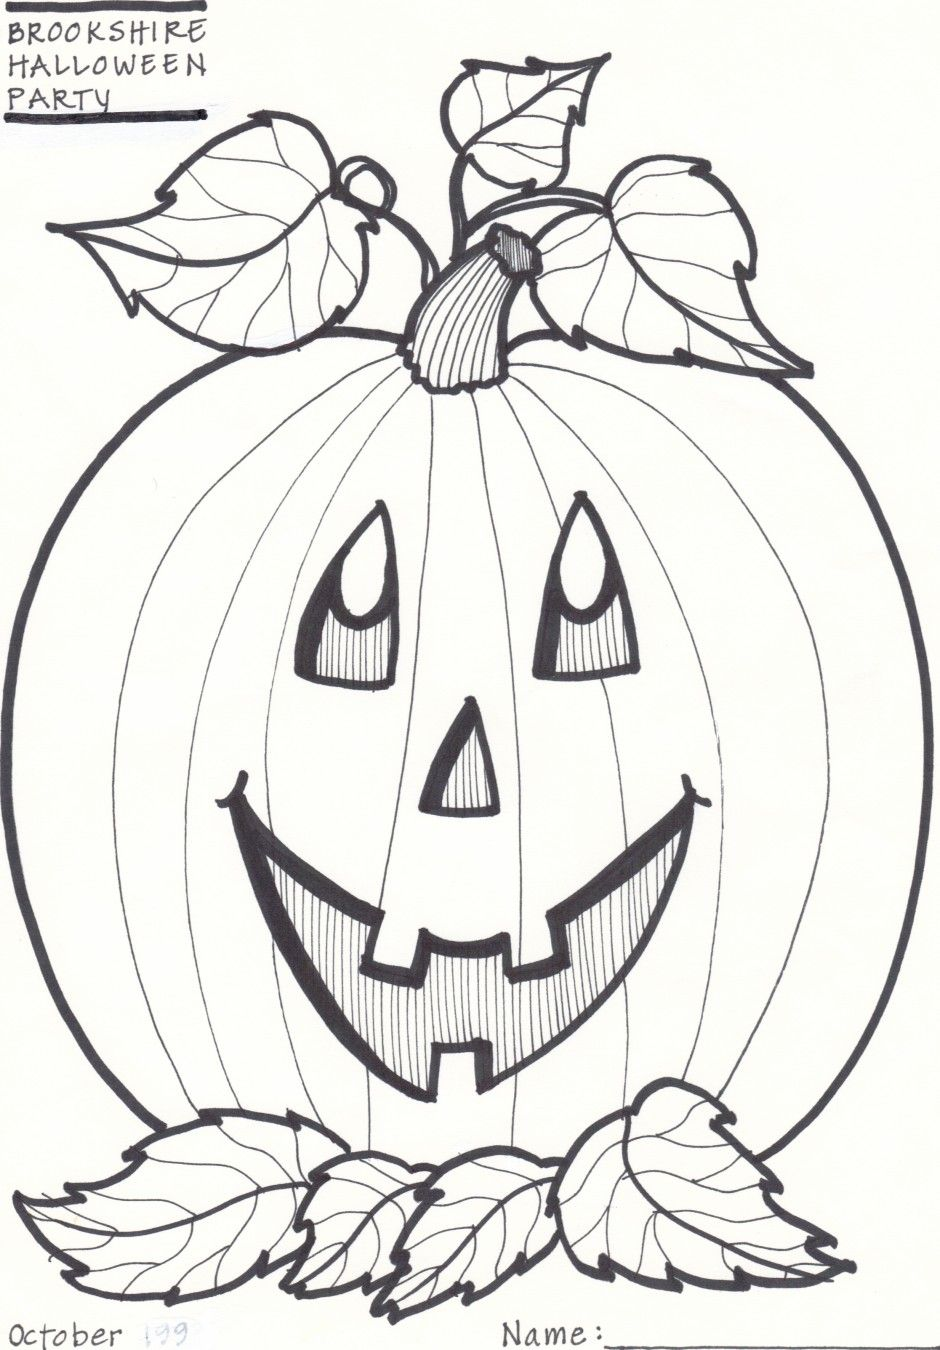 pumpkin coloring pages | halloween crafts for kids plain pumpkin ...